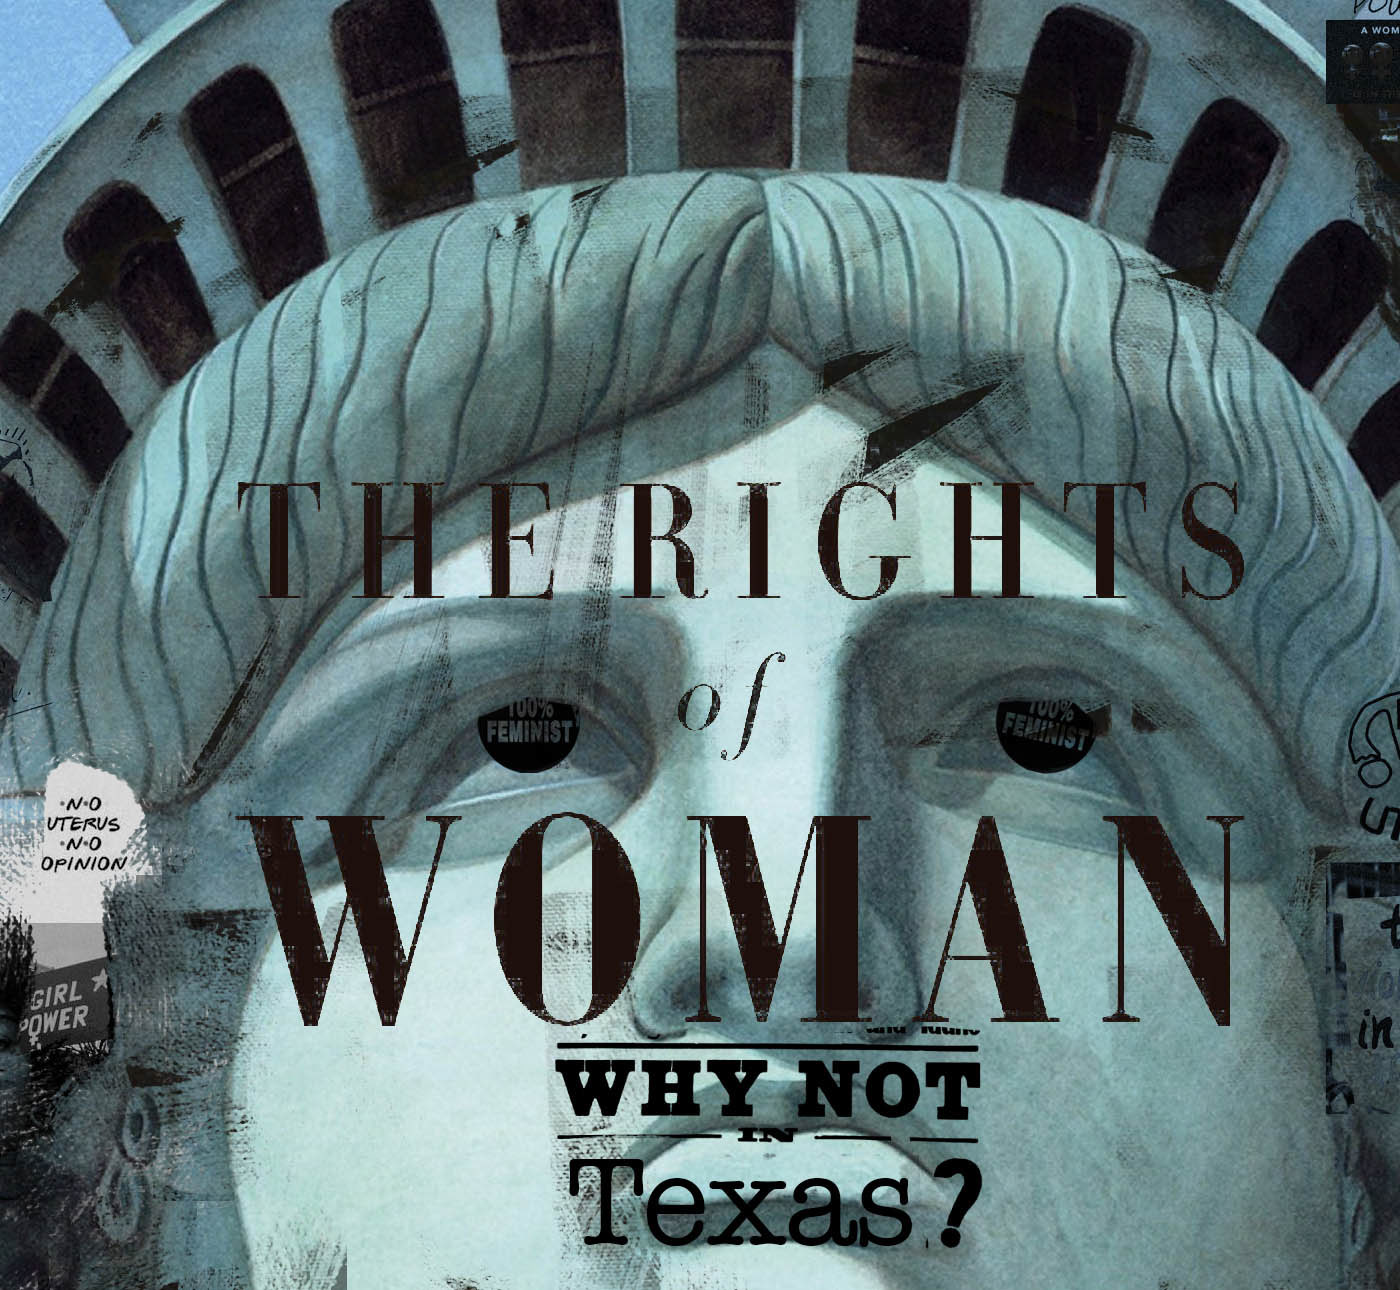 colagem collage feminism Human rights Me Too portrait poster typography   vintage women